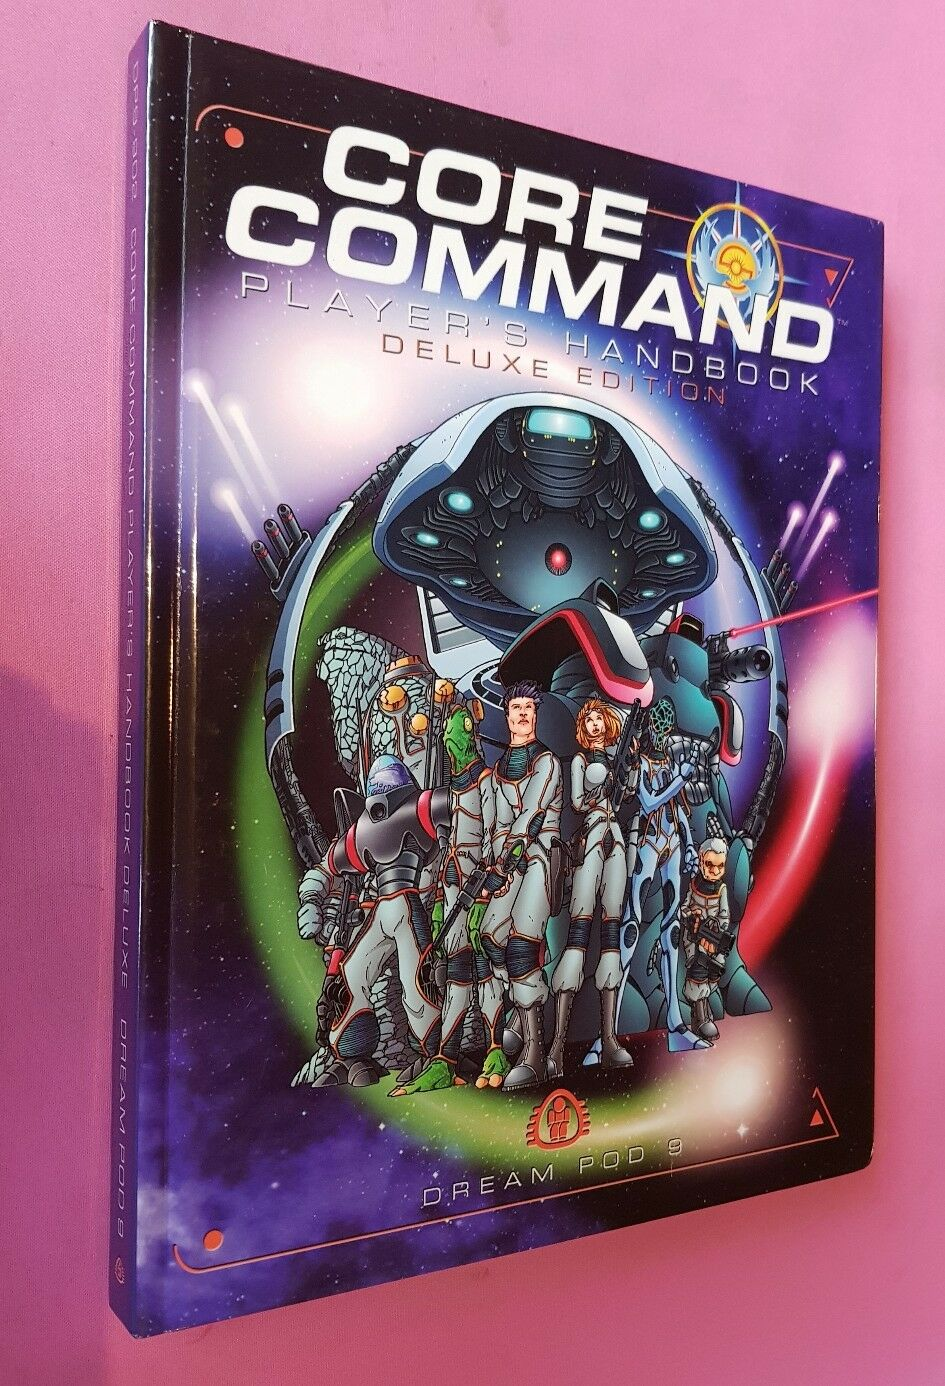 PLAYERS HANDBOOK DELUXE EDITION - CORE COMMAND DREAM POD 9 DP9 RPG ROLEPLAYING